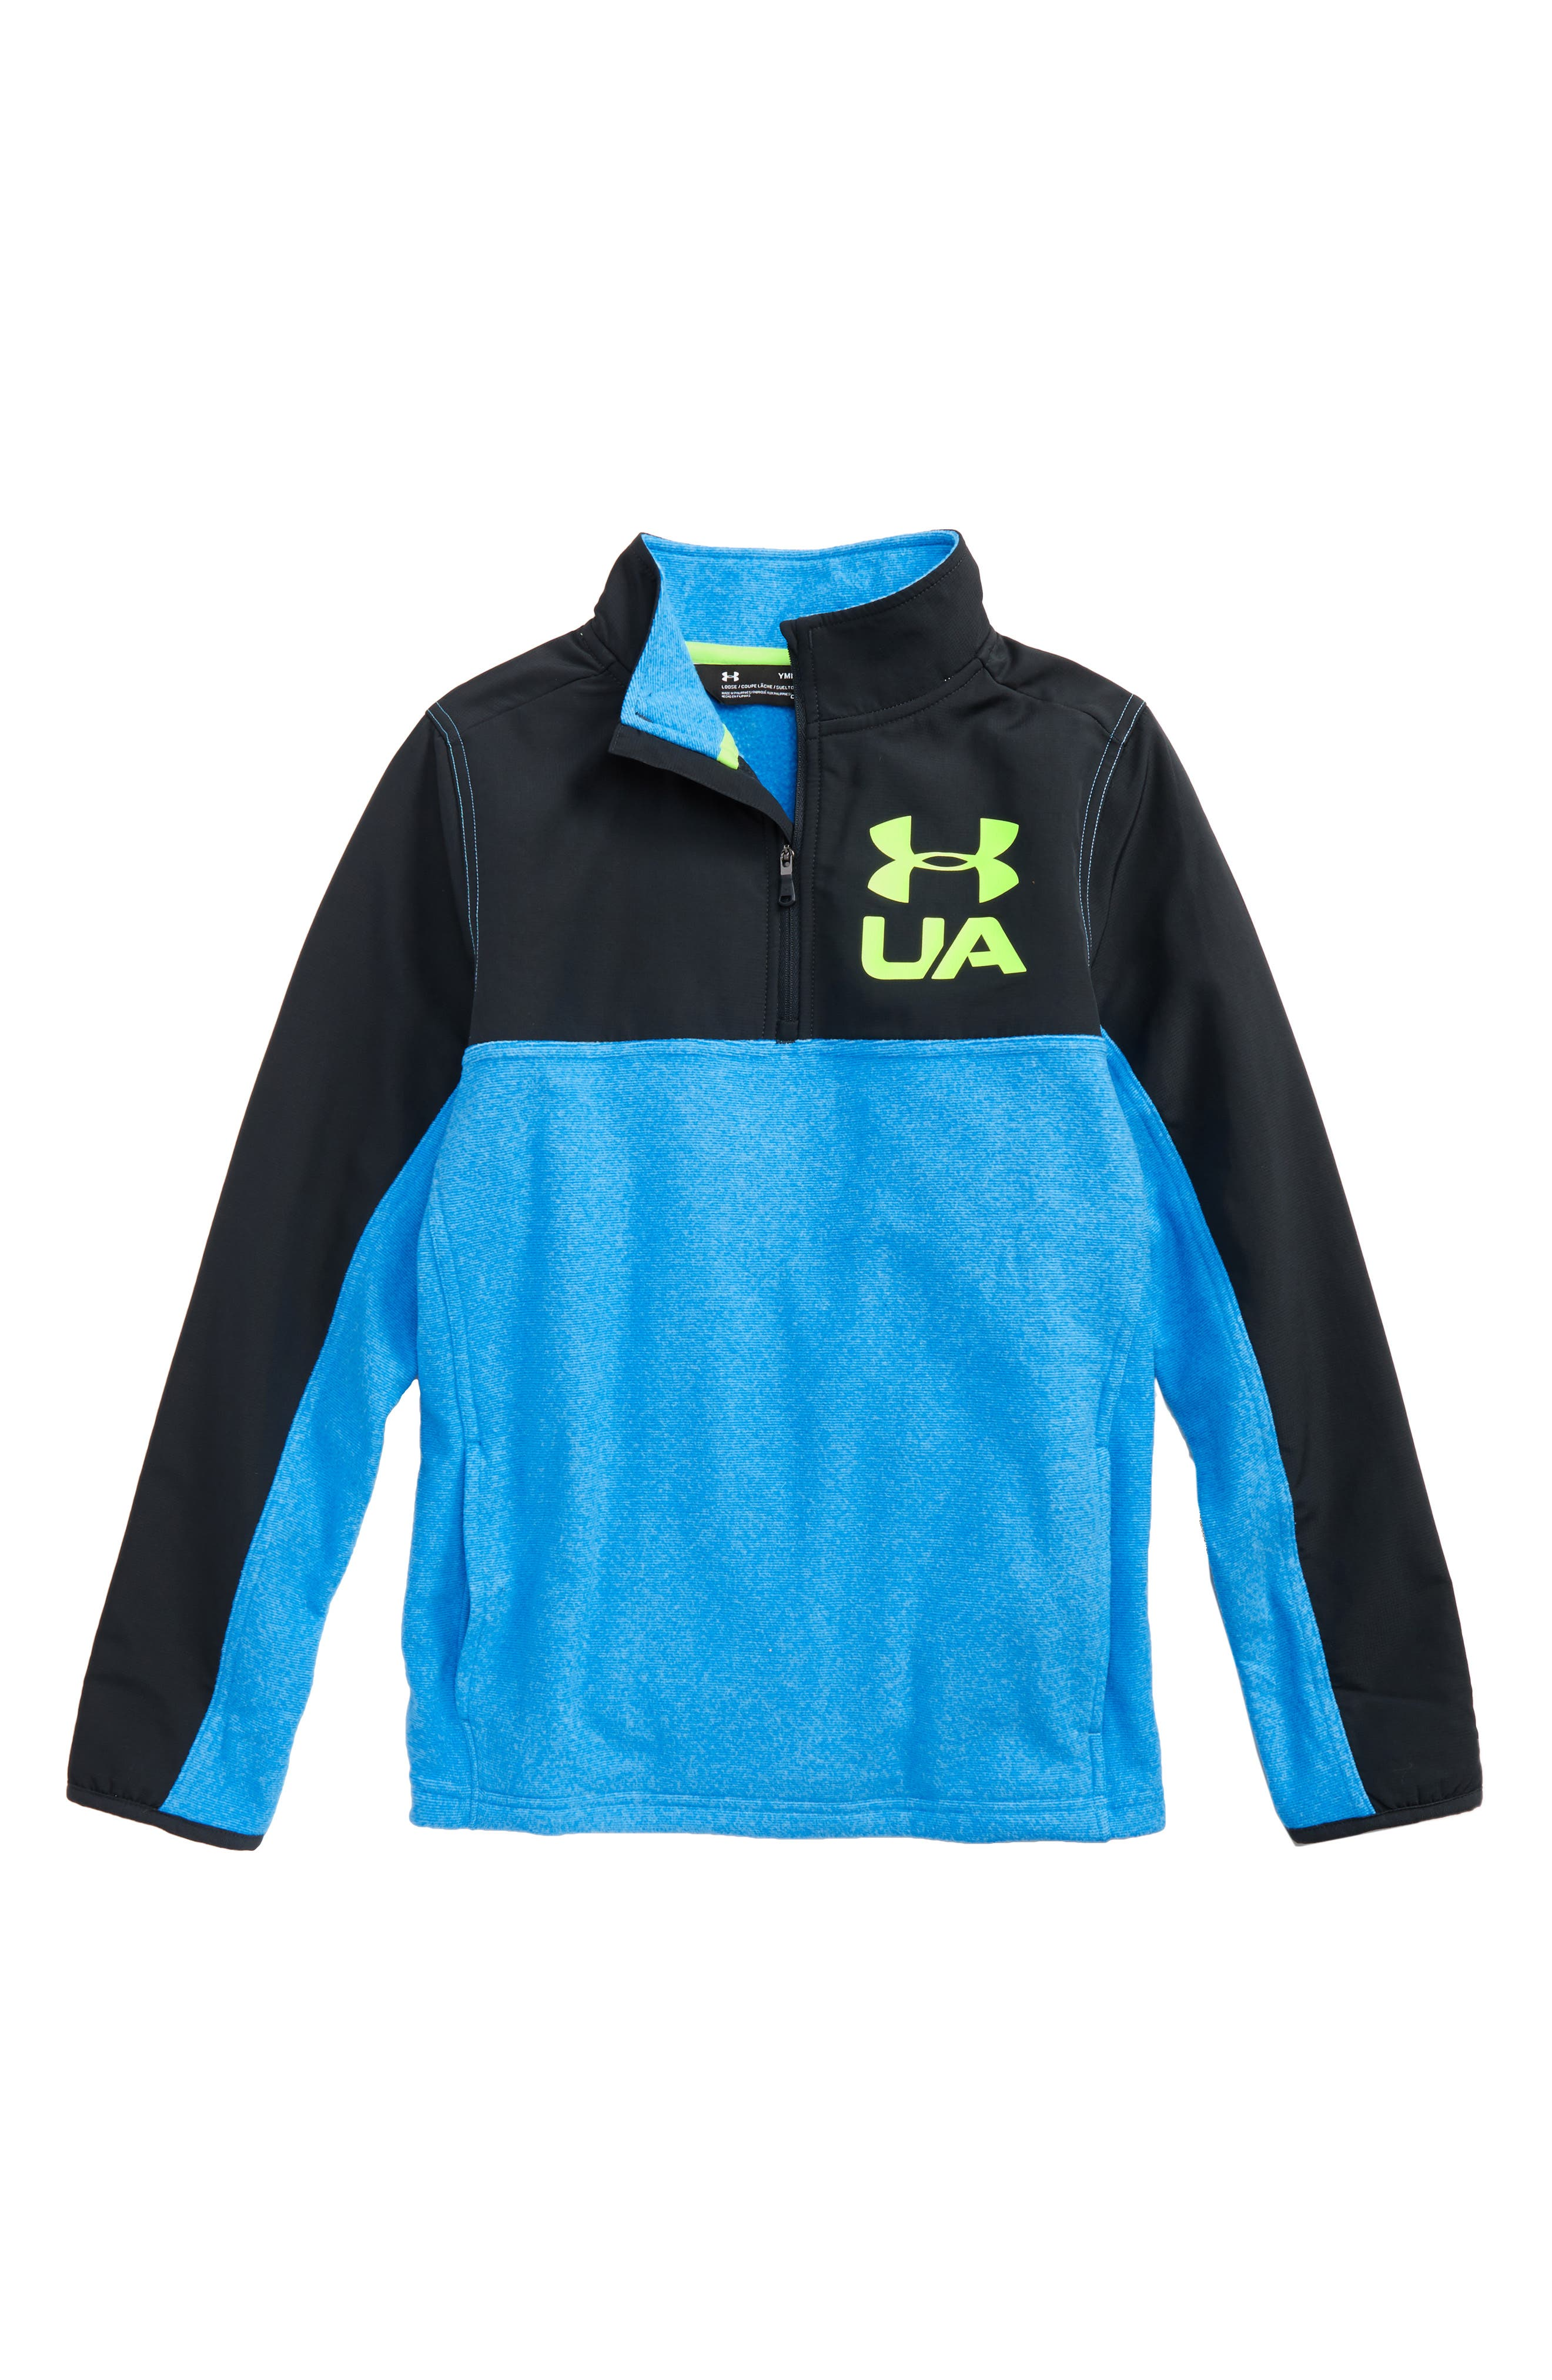 Alternate Image 1 Selected - Under Armour Phenom ColdGear® Quarter Zip Pullover (Big Boys)